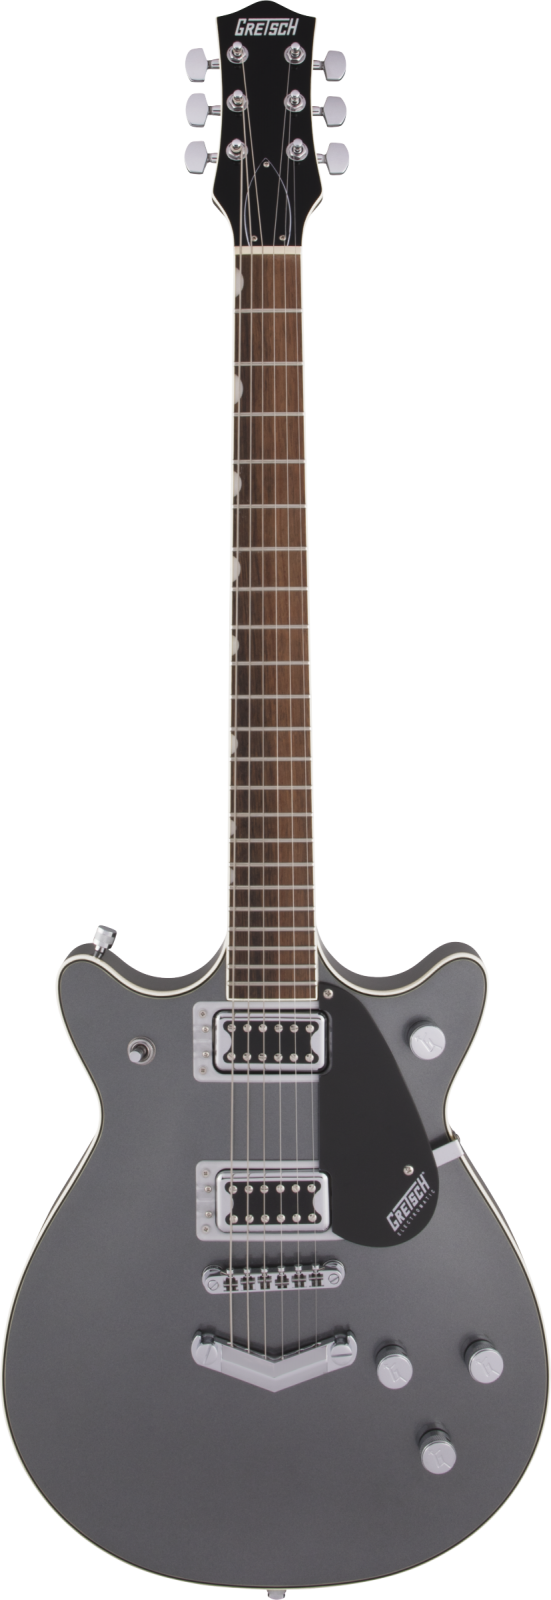 Gretsch G5222 Electromatic  Double Jet  BT with V-Stoptail, Laurel Fingerboard, London Grey